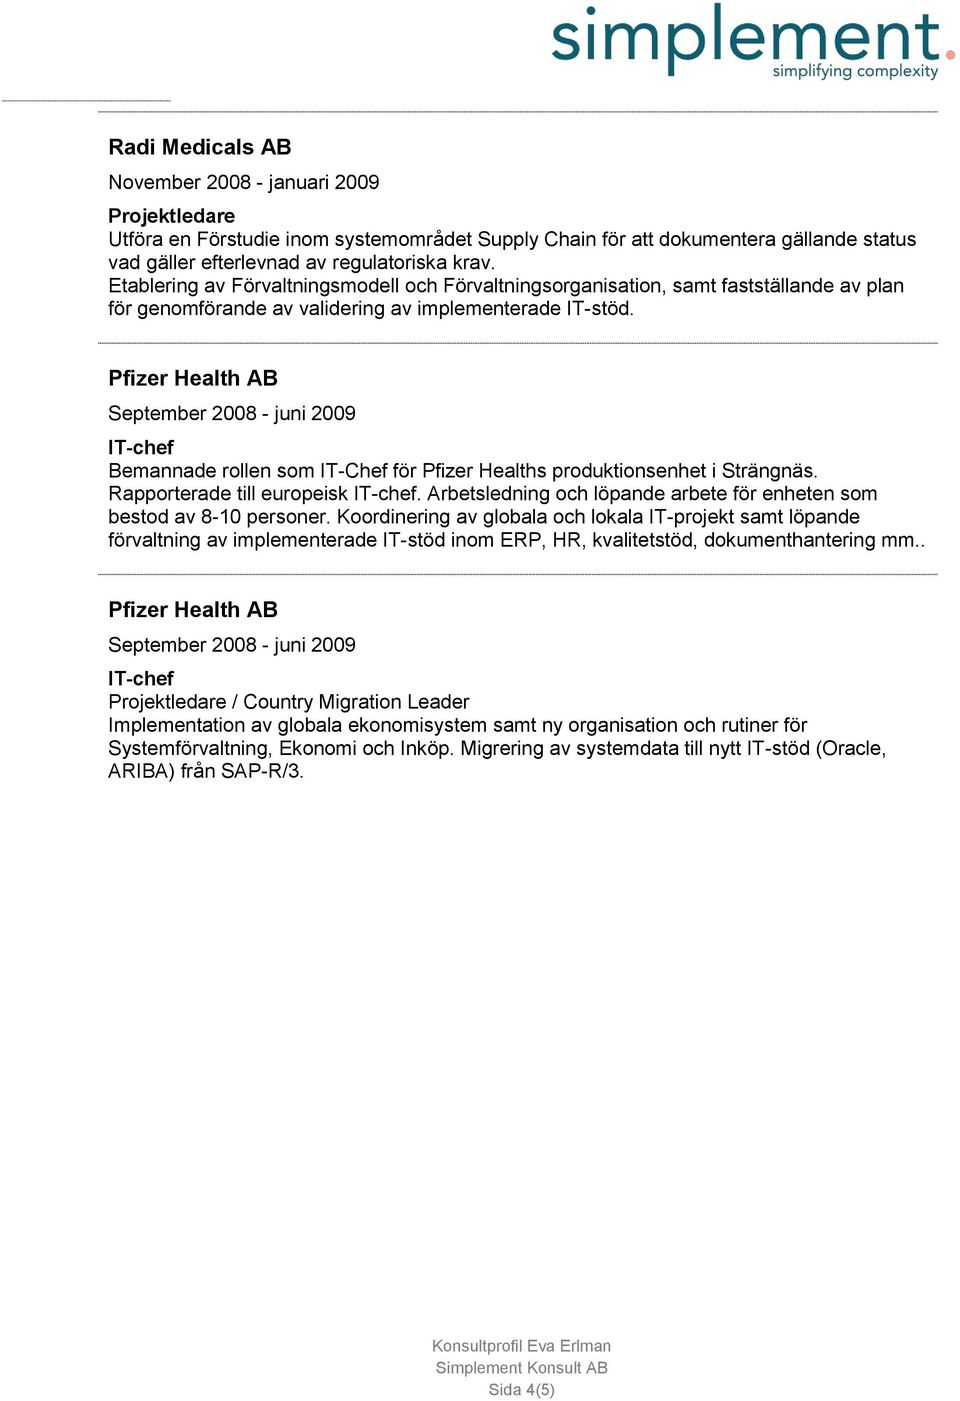 September 2008 - juni 2009 IT-chef Bemannade rollen som IT-Chef för Pfizer Healths produktionsenhet i Strängnäs. Rapporterade till europeisk IT-chef.